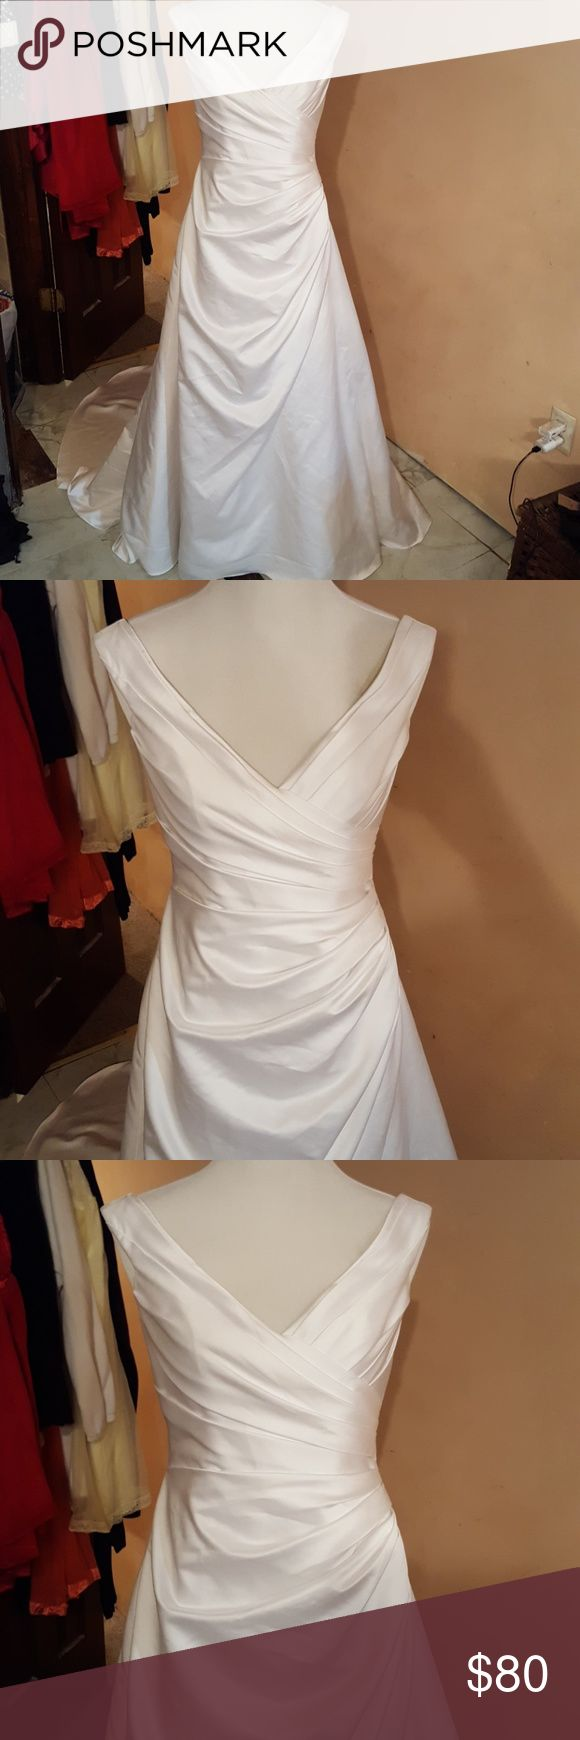 Brand new wedding gown Never worn or even tried on. David's bridal wedding gown. 4th picture shows dress with under skirt to make it look fuller. The skirt is also available to buy David's Bridal Dresses Wedding